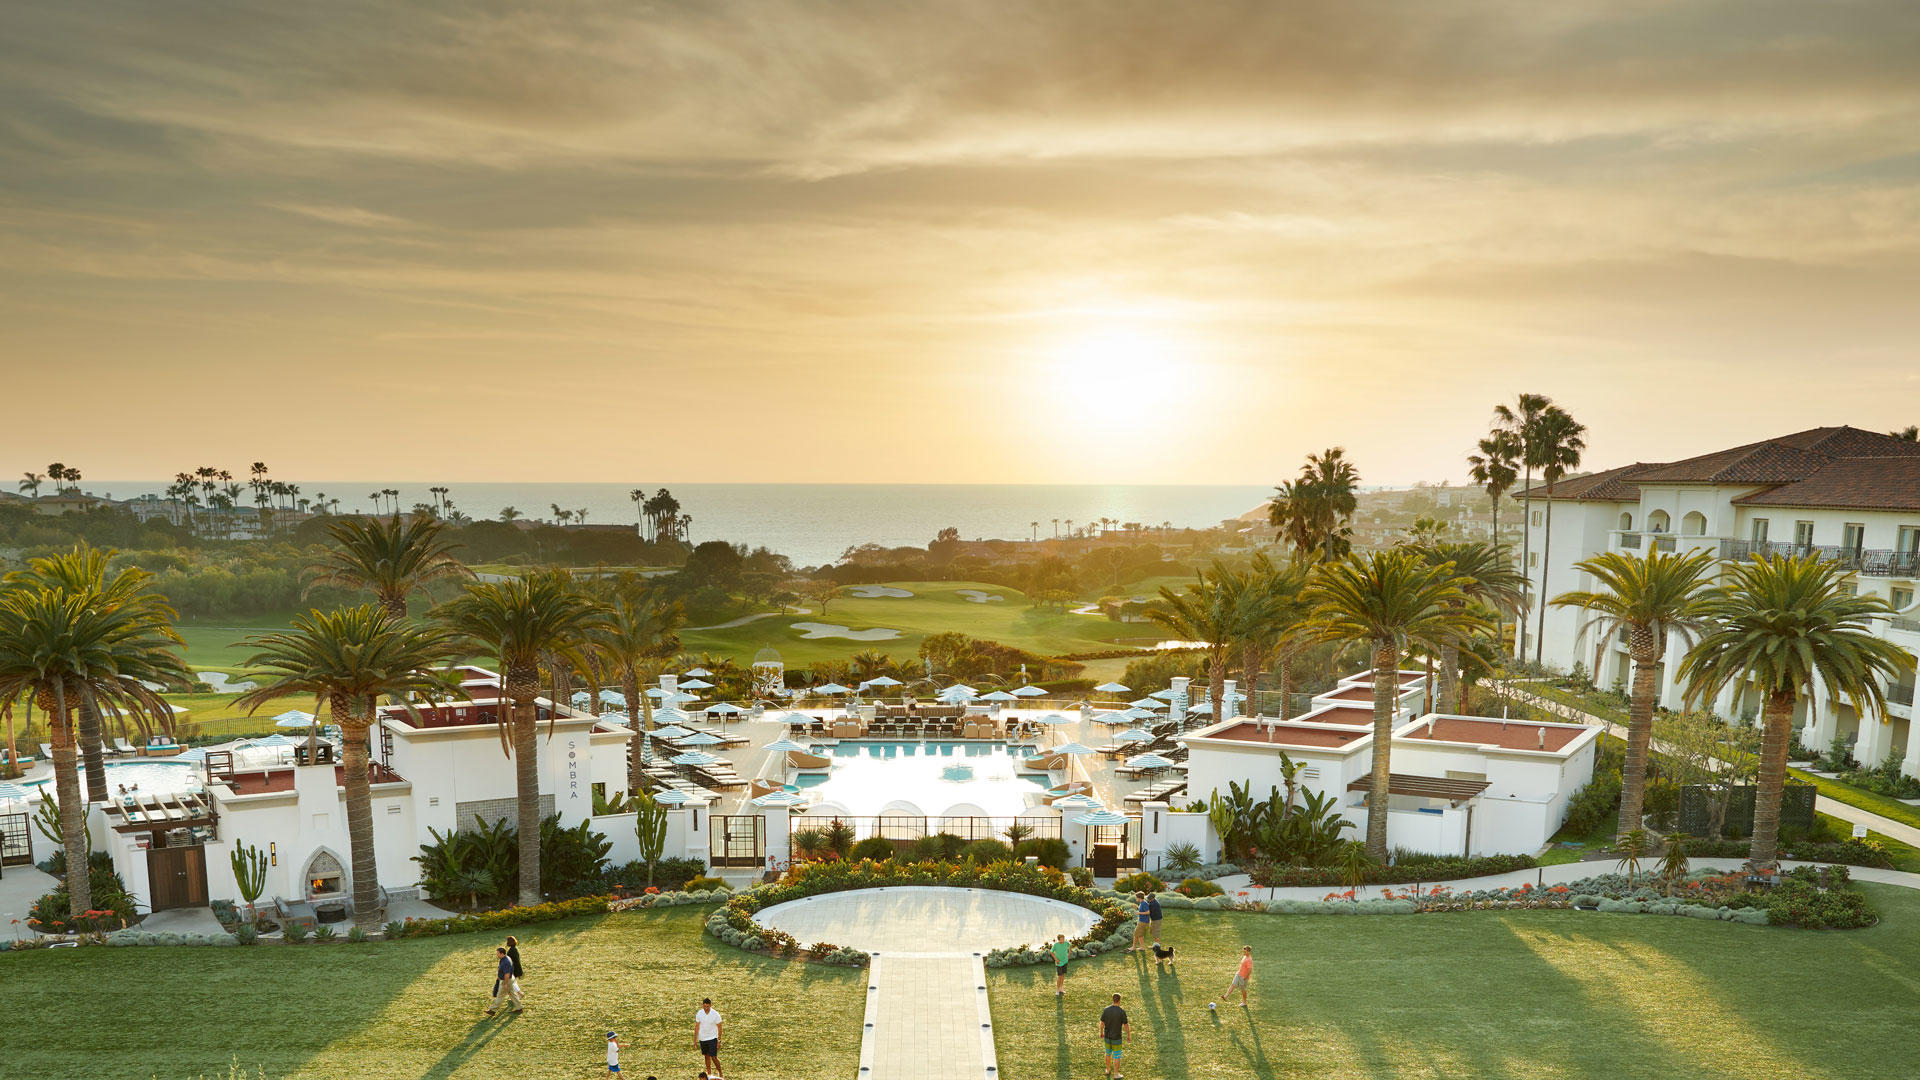 Monarch_Beach_Resort_1